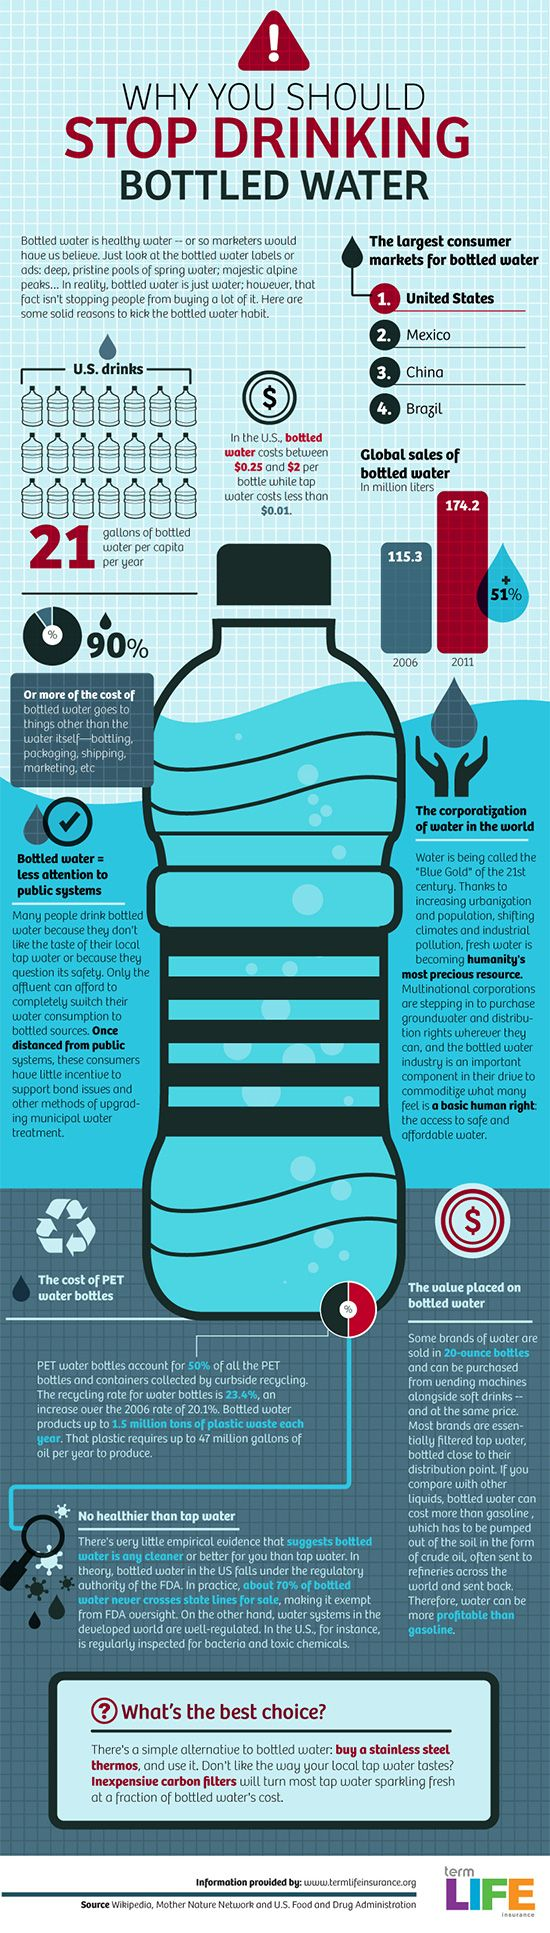 I always drink tap water, but still good to know why we should stop drinking bottled water @TermLifeInsurance